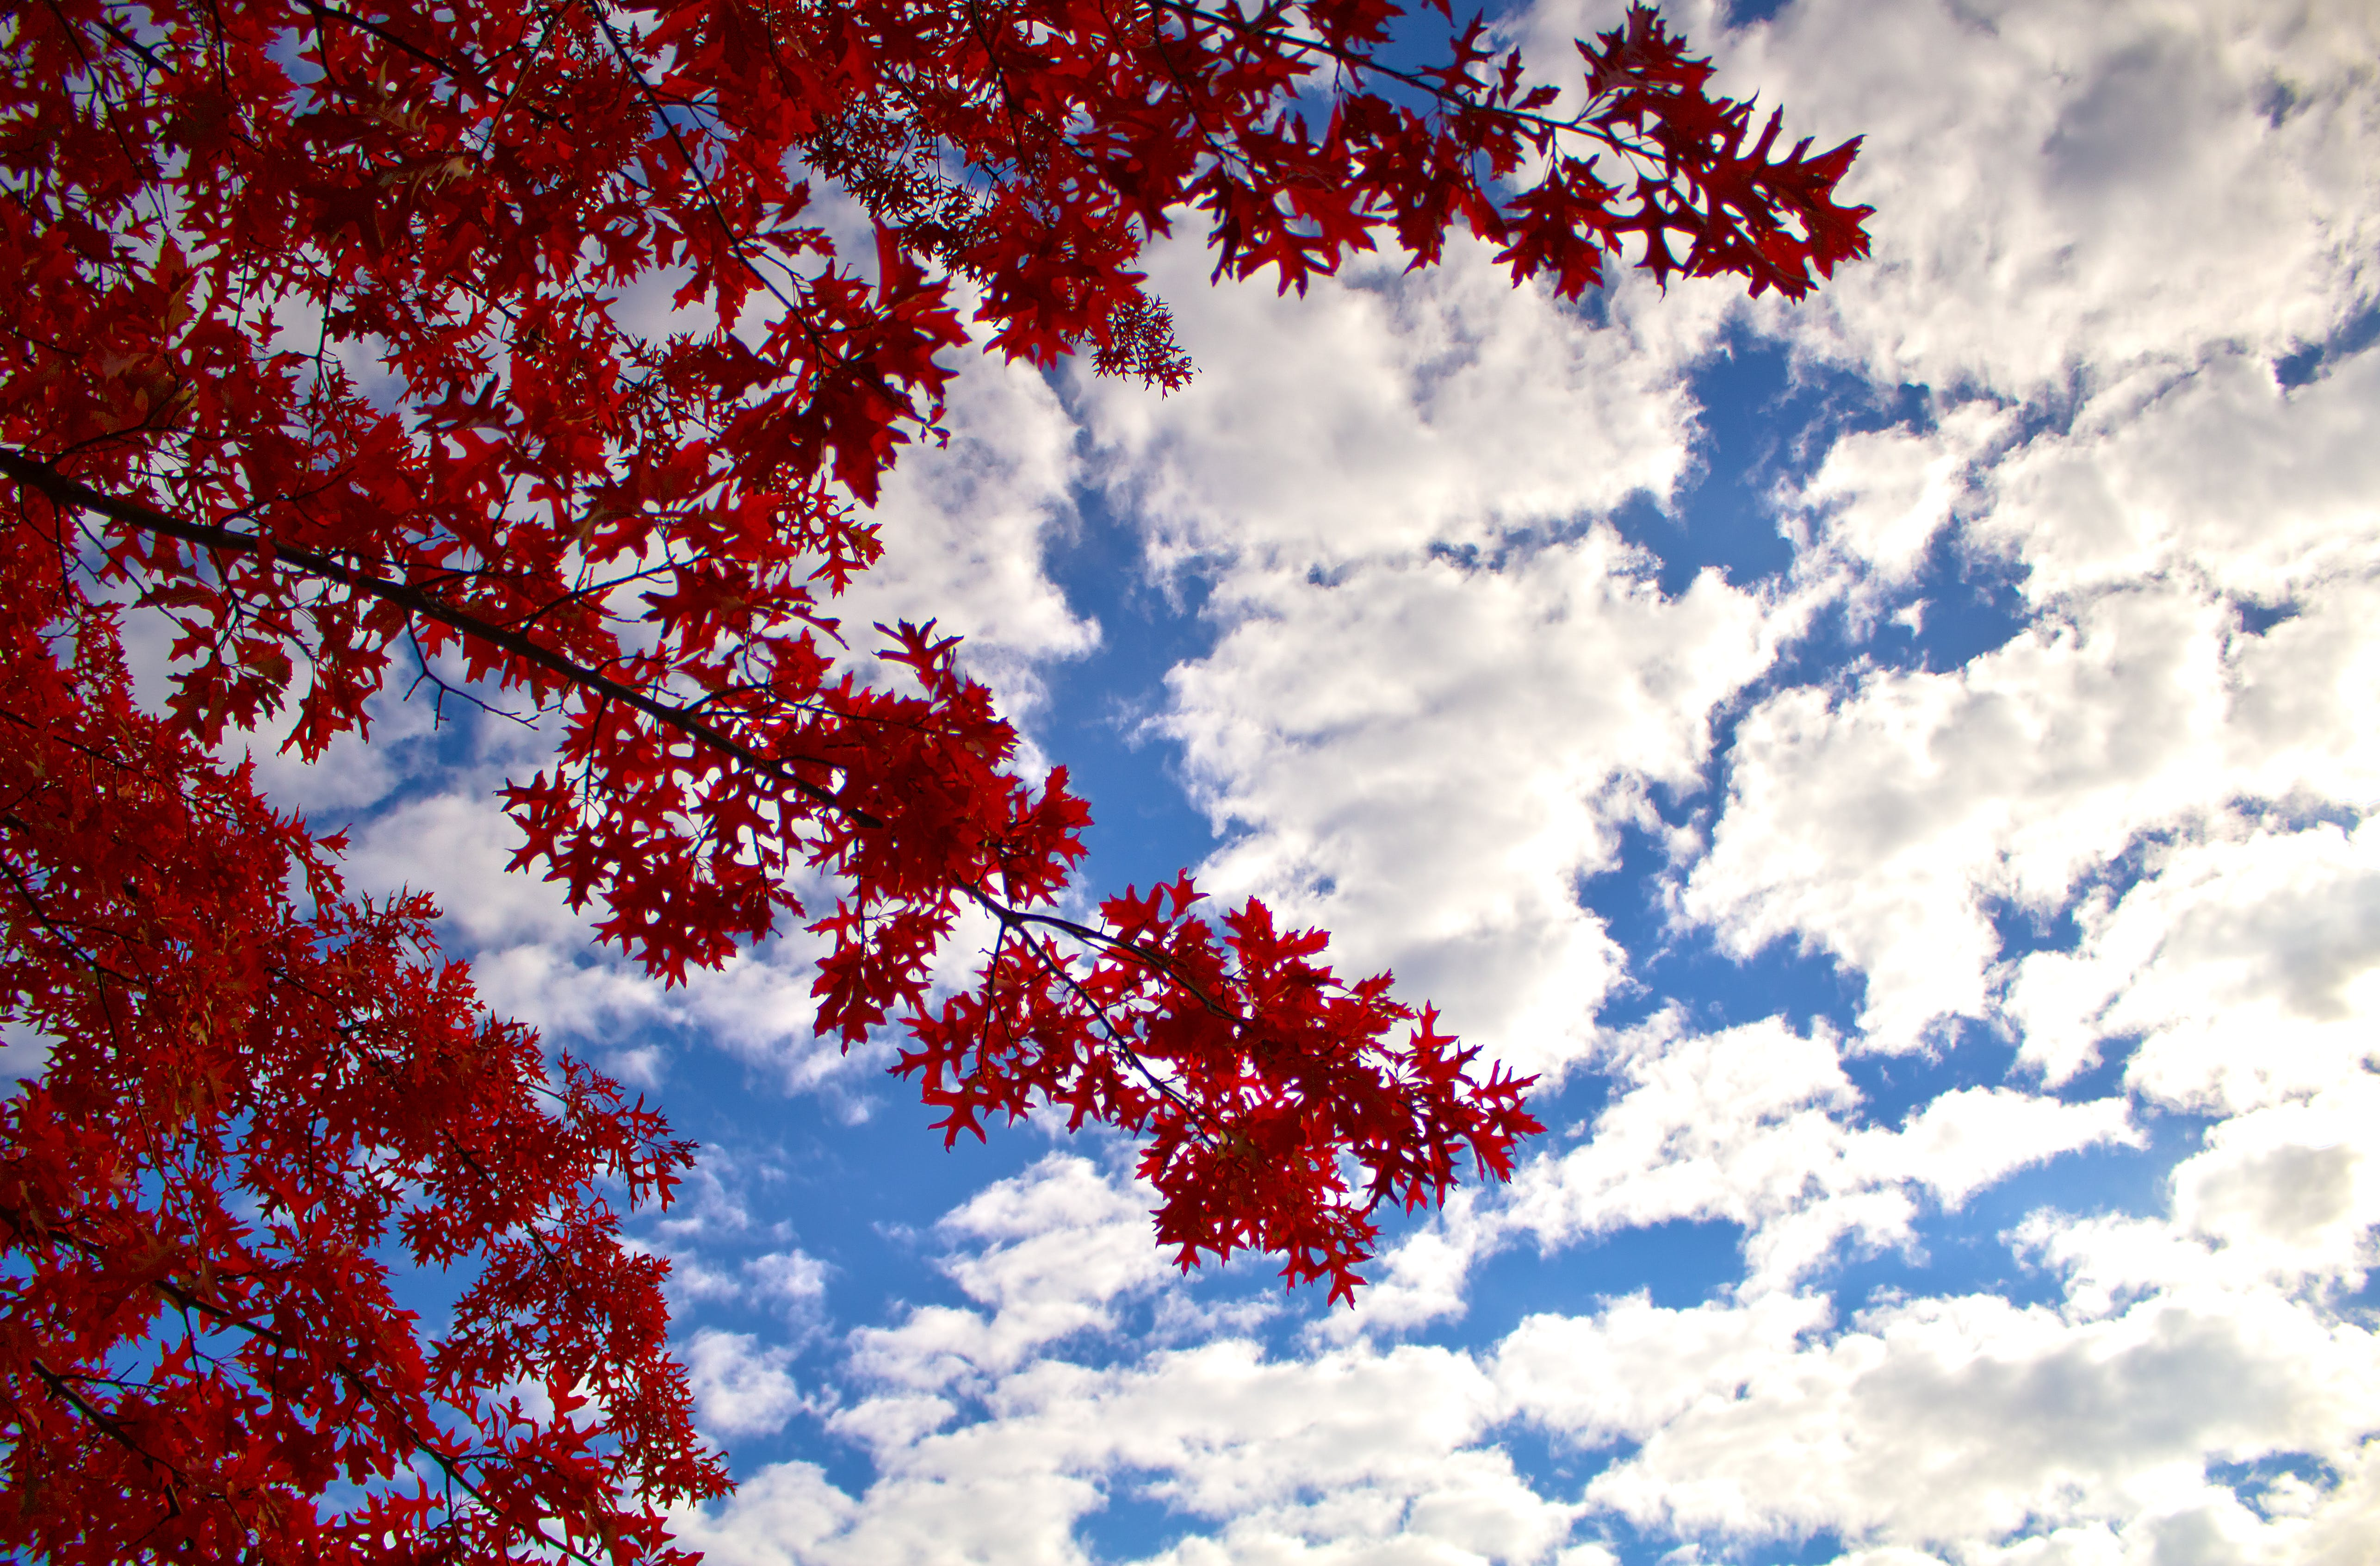 Low Angle Photography of Red Leaf Tree Under Cloudy Blue Sky during Daytime